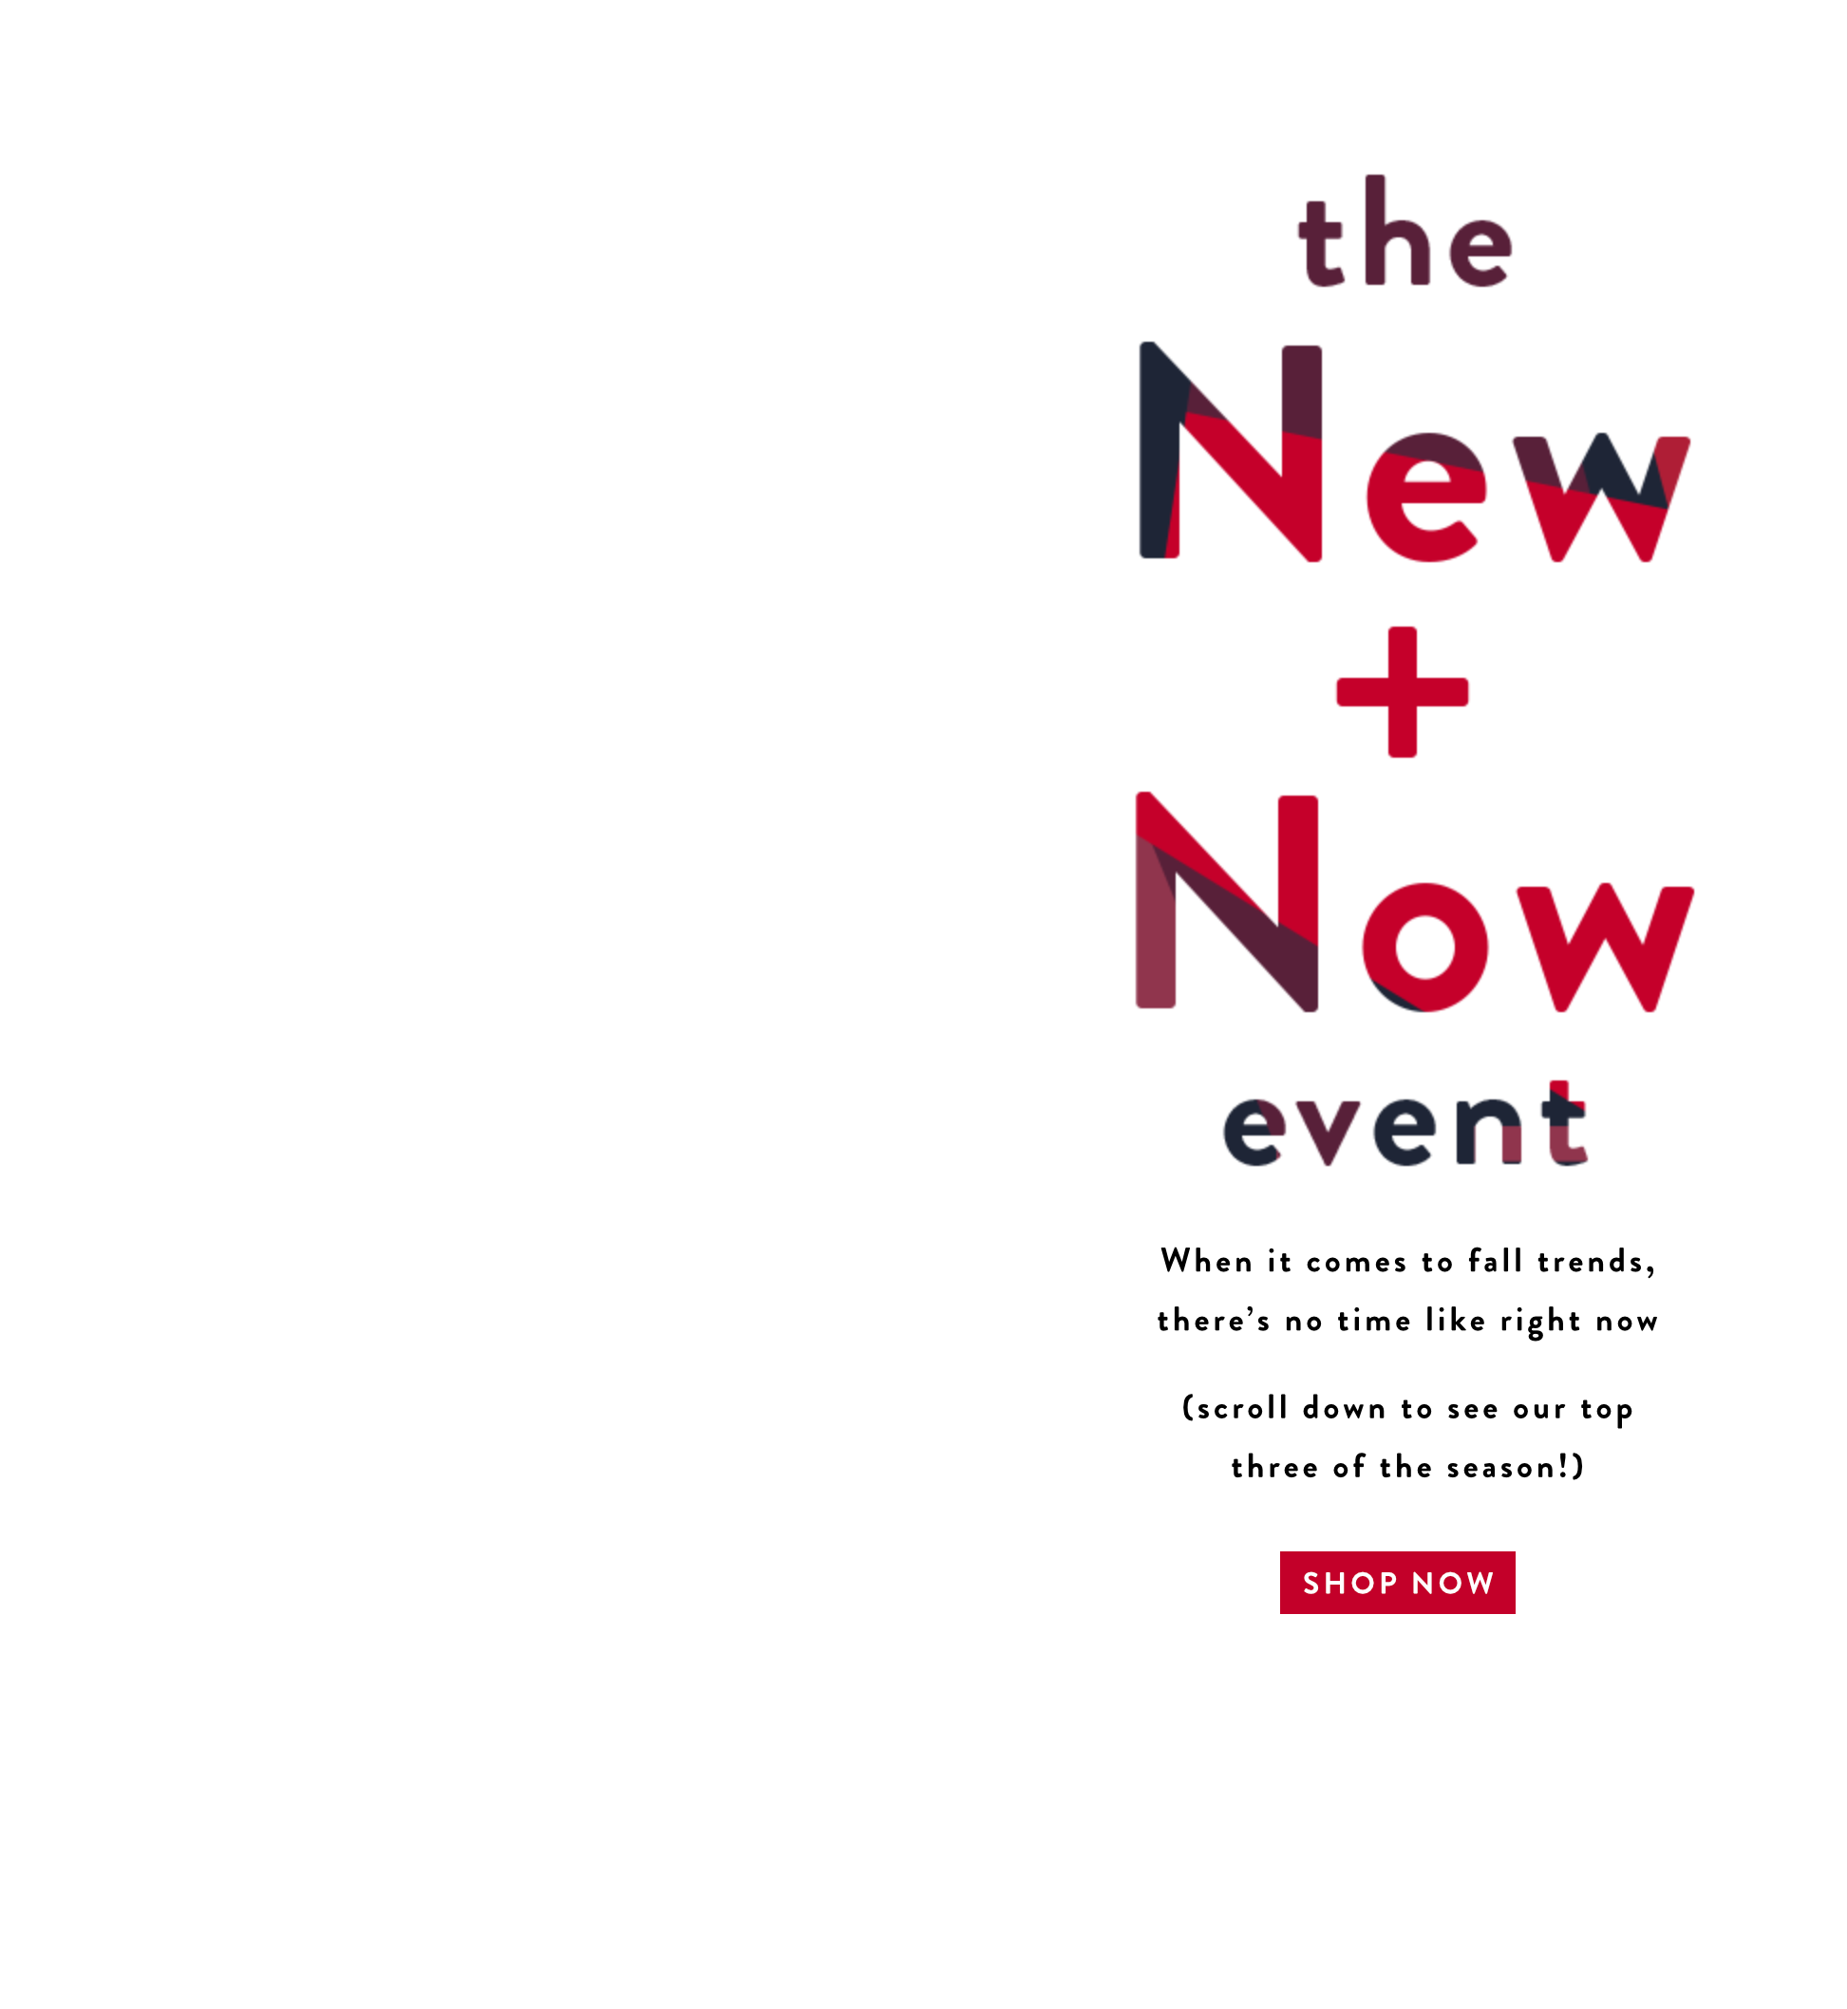 THE NEW + NOW EVENT